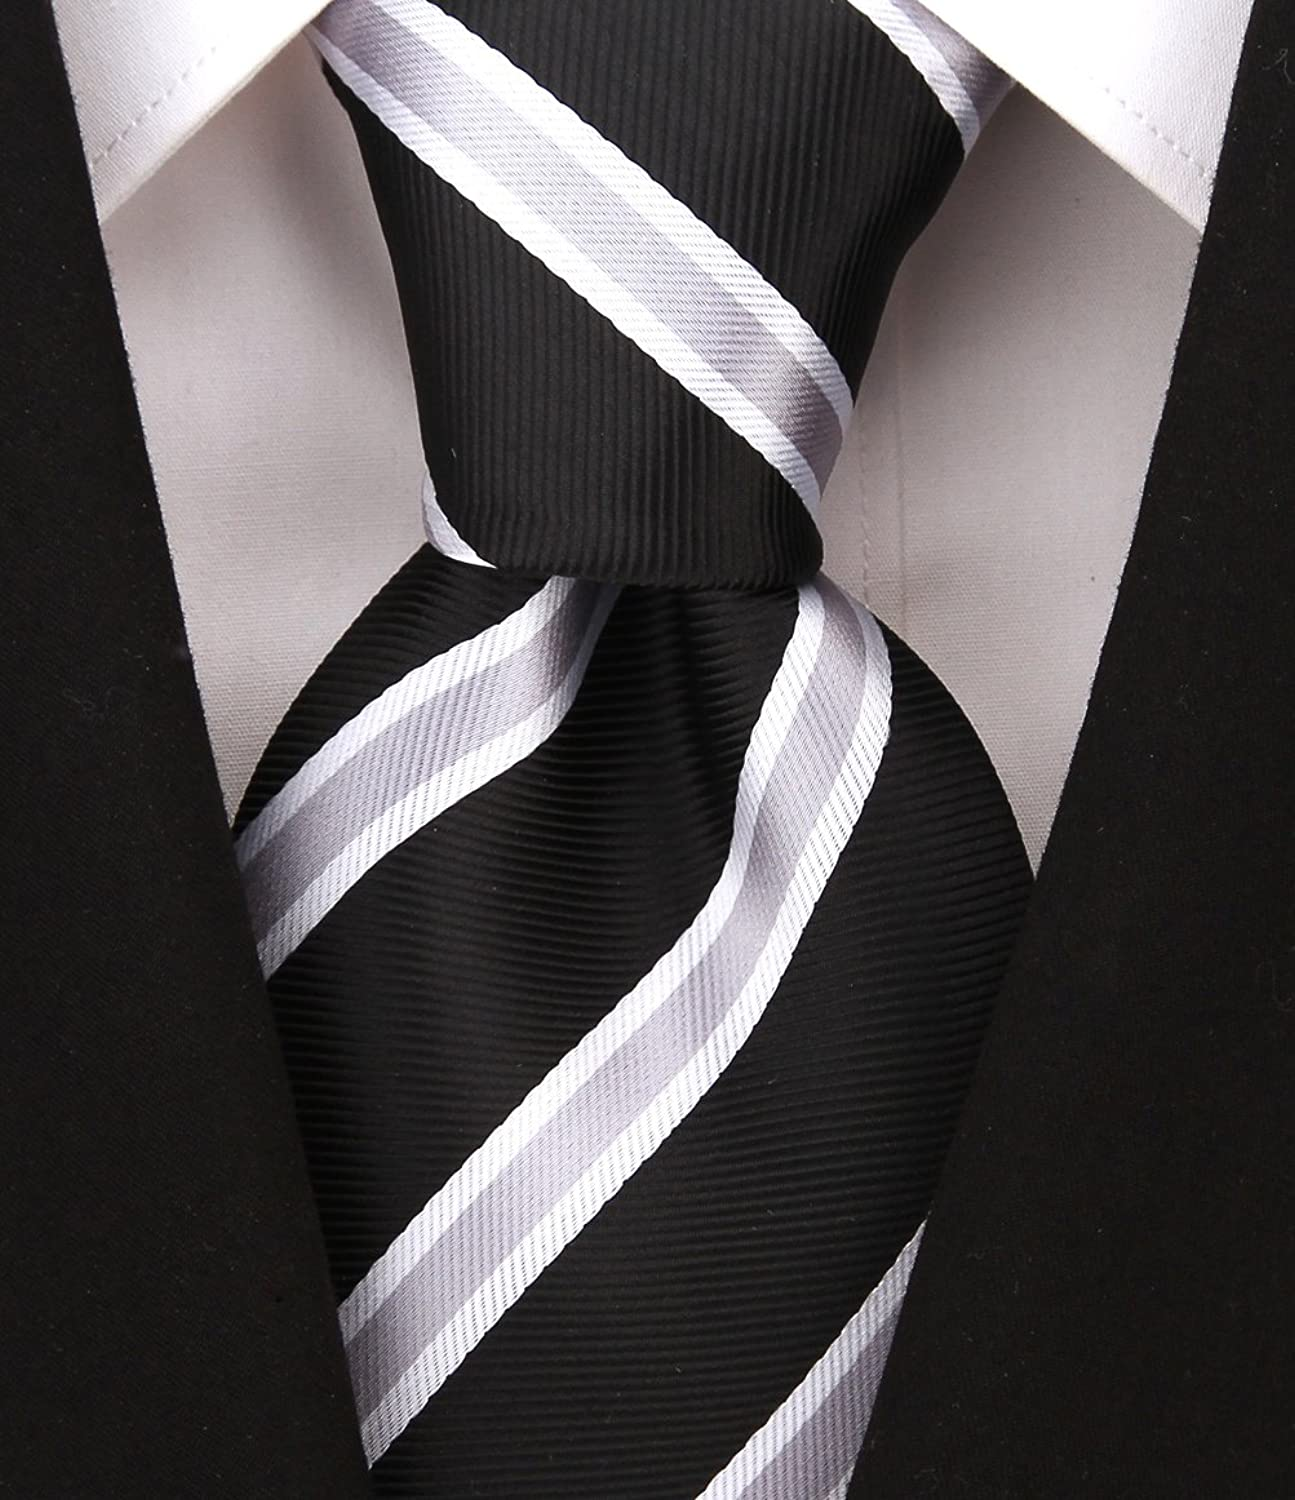 Edwardian Titanic Mens Formal Suit Guide Scott Allan Mens Striped Necktie $11.99 AT vintagedancer.com